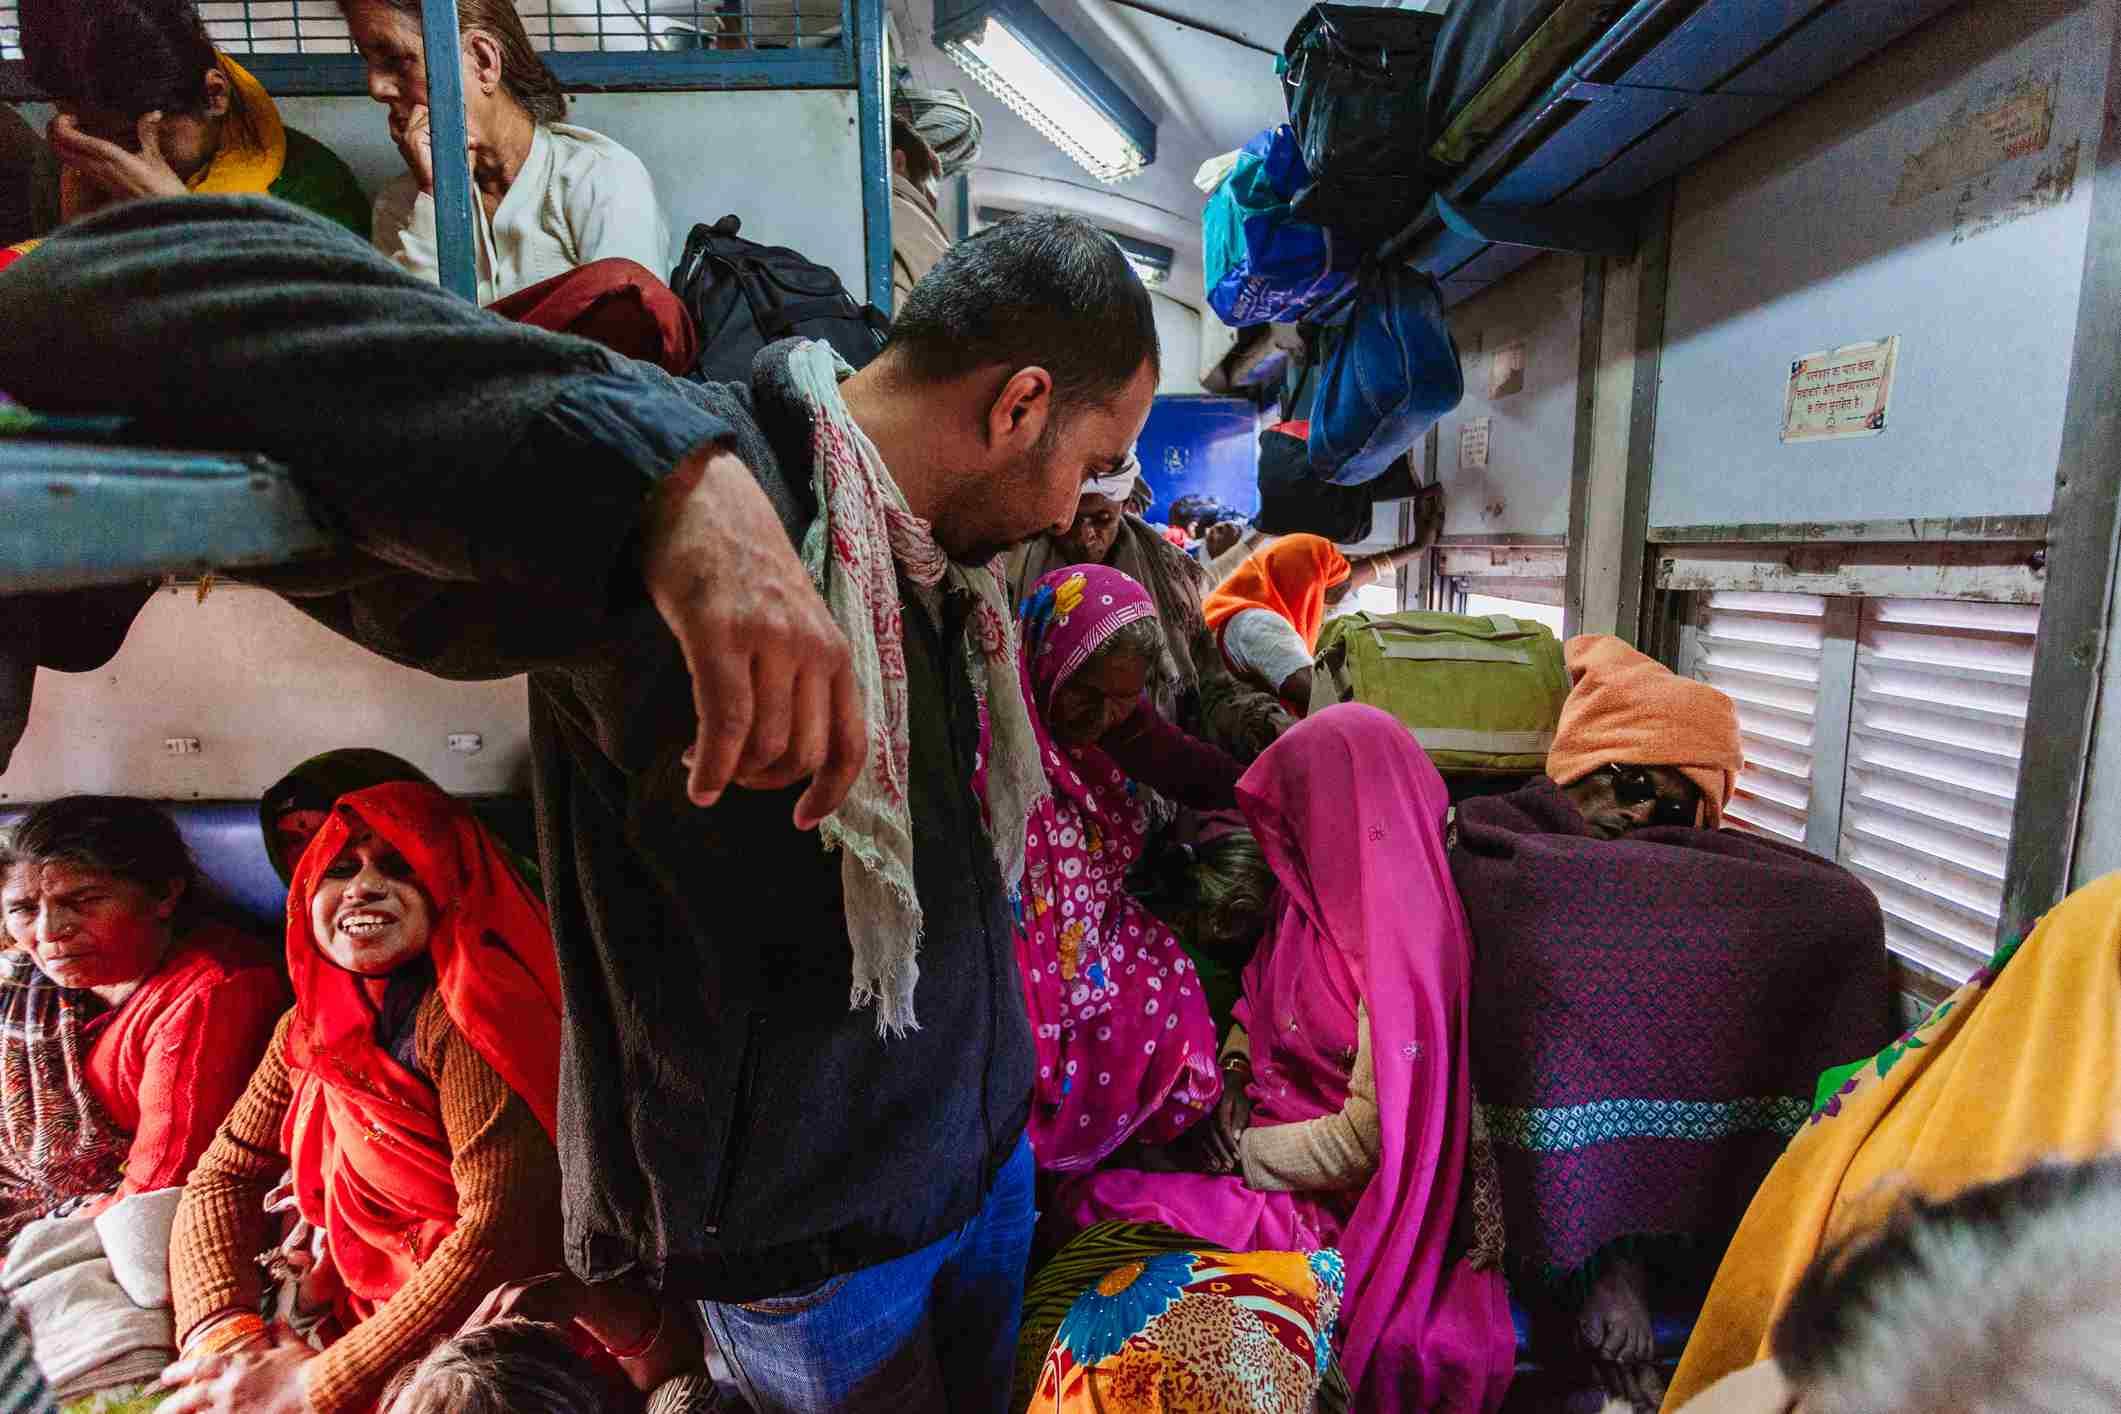 Indian Railways unreserved carriage.